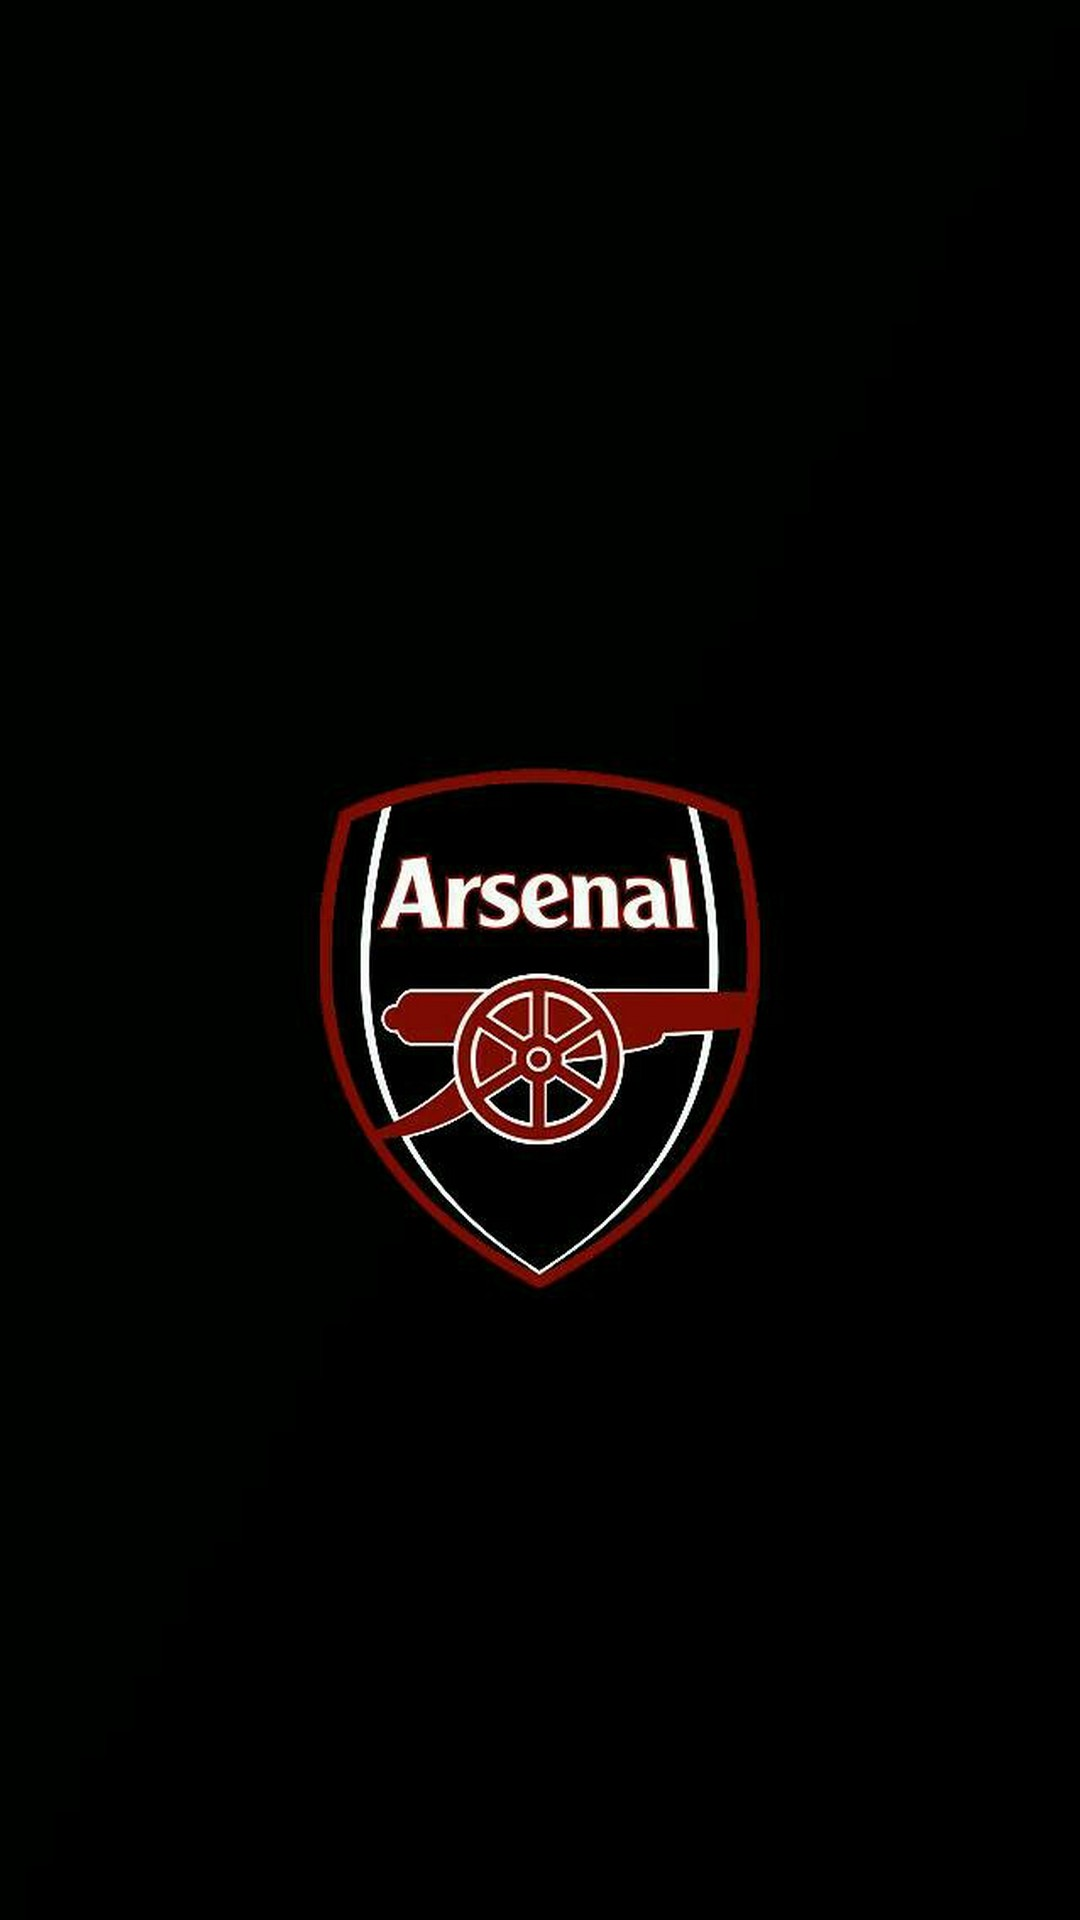 arsenal fc wallpaper android 2021